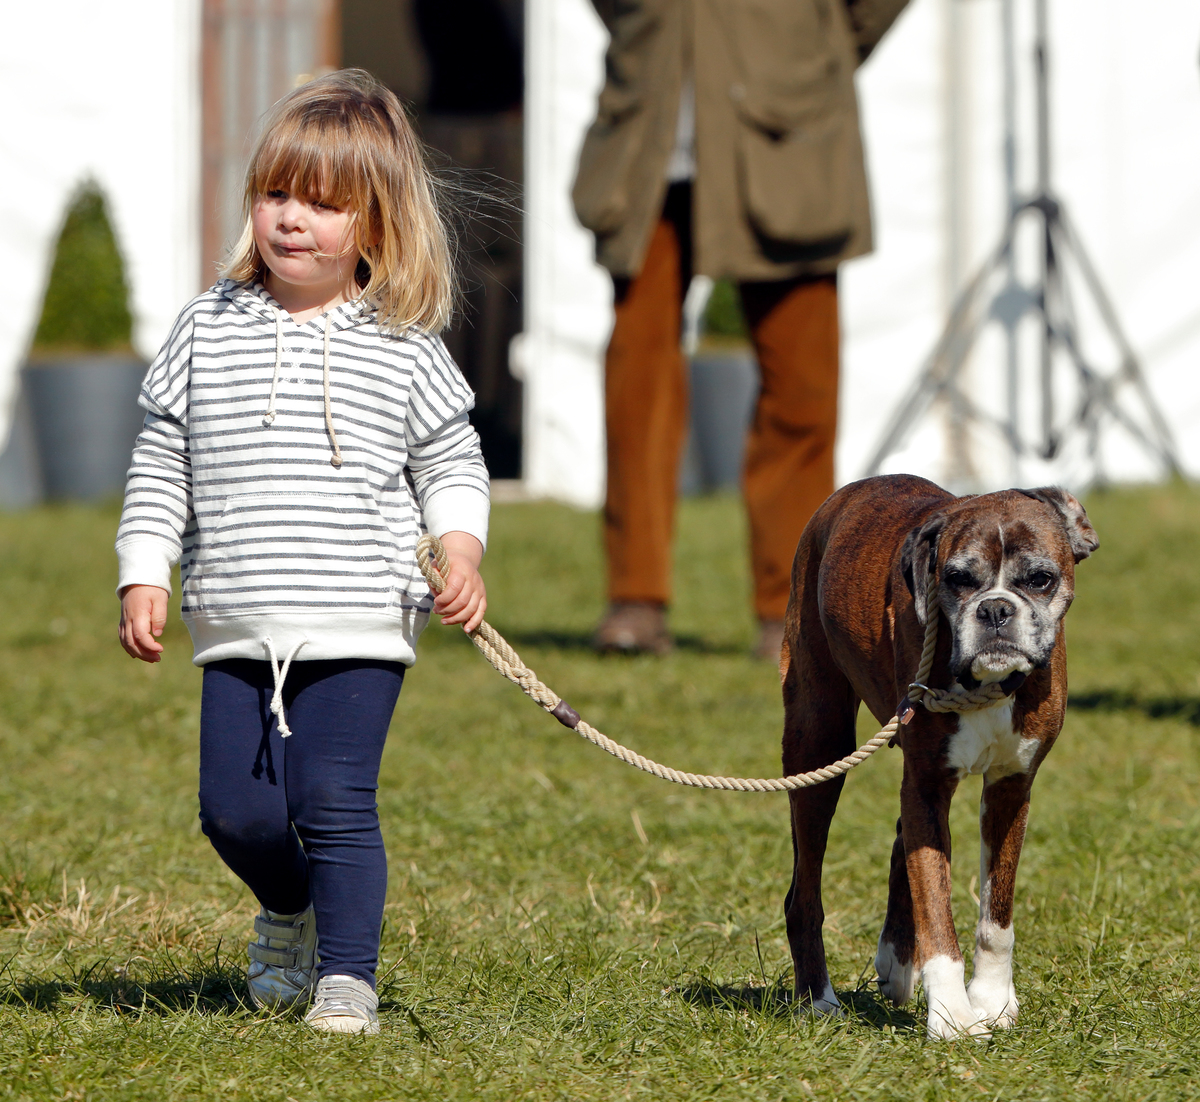 boxer and baby walking down the street